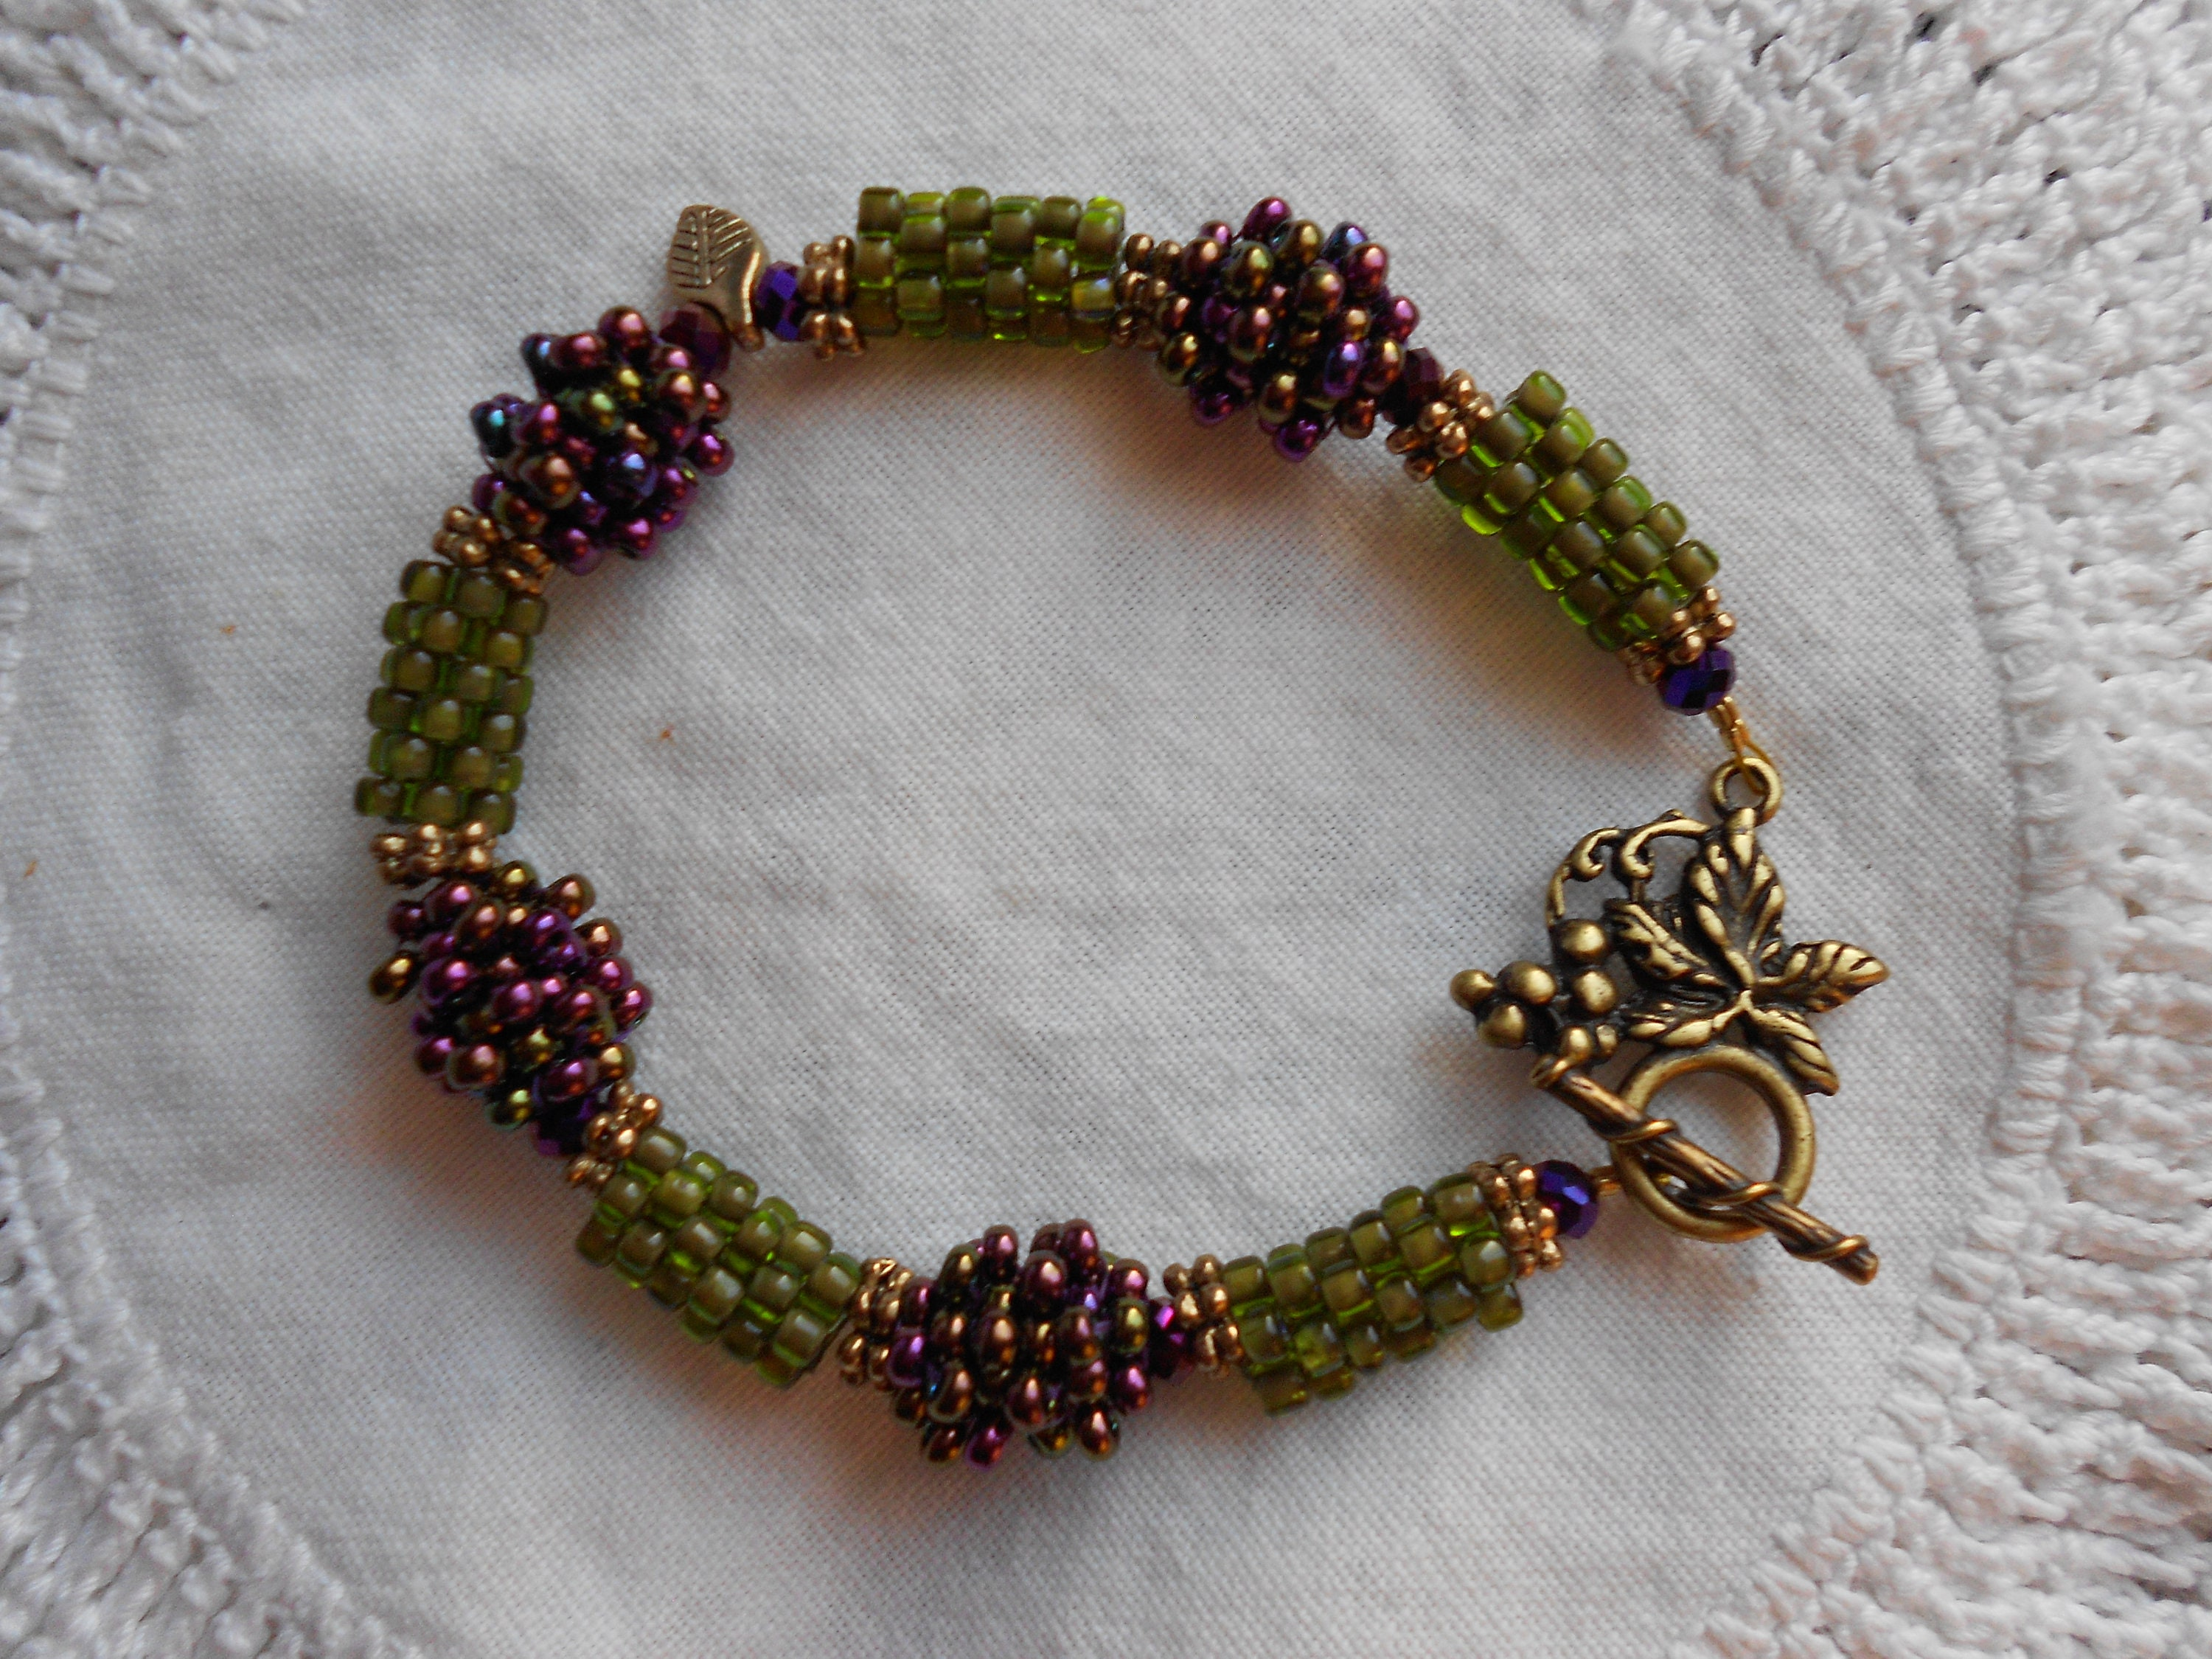 Green  beaded wristband and earing and handmade and stylish Raspberry Vintage Style chic beaded wristband and earing high Quality